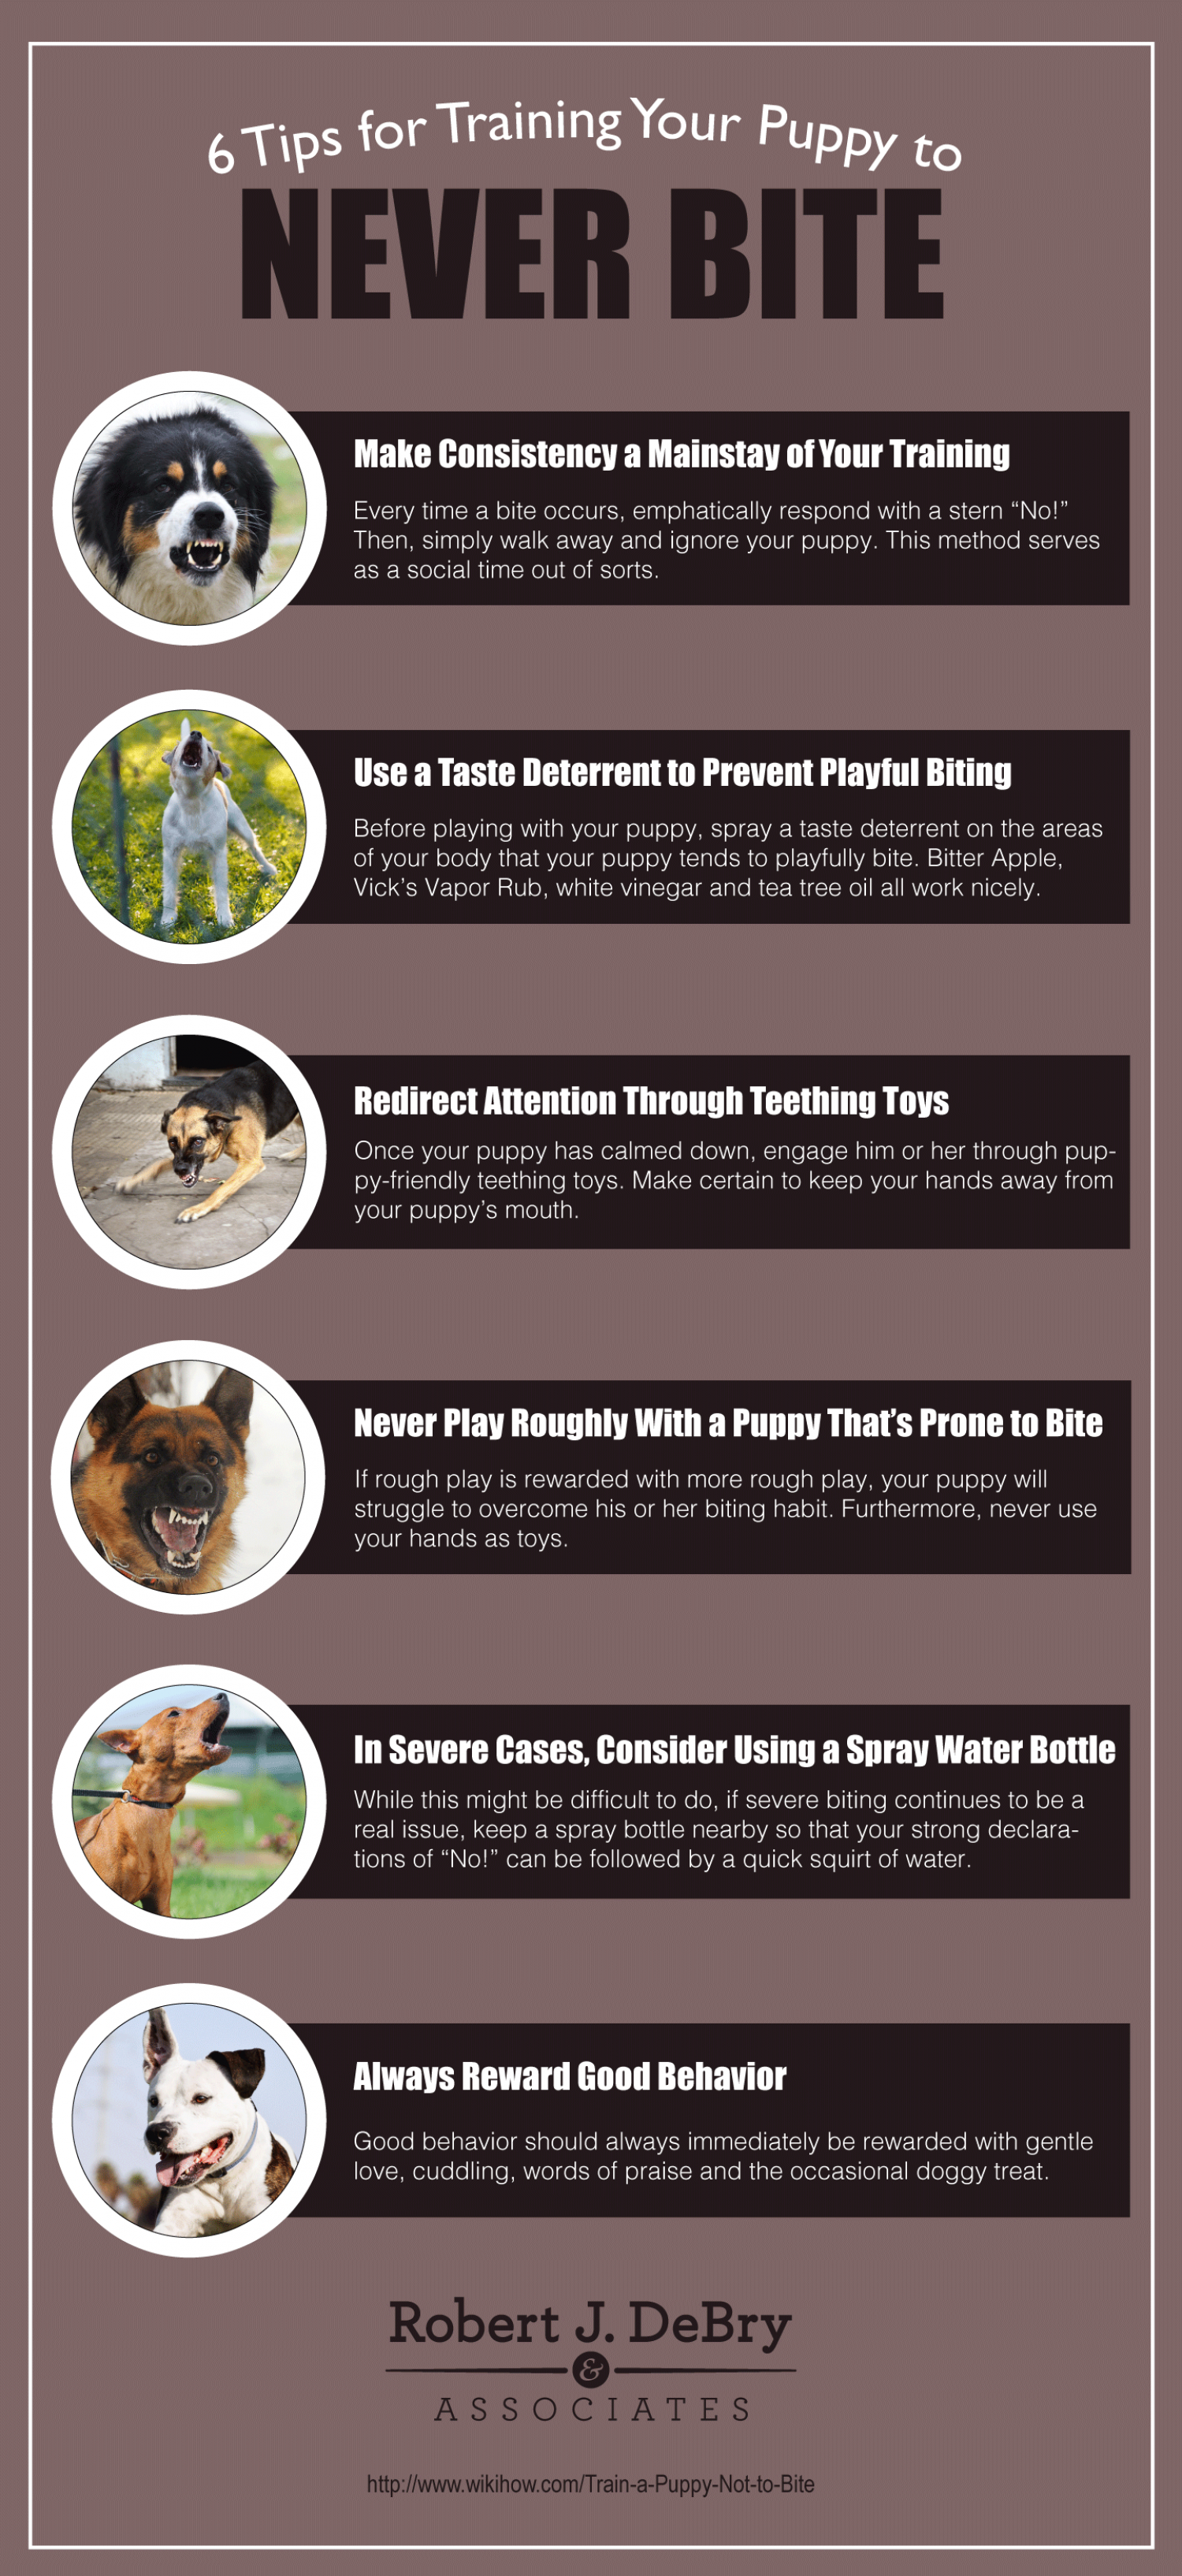 6 Tips for Training Your Puppy to Never Bite | Visual ly